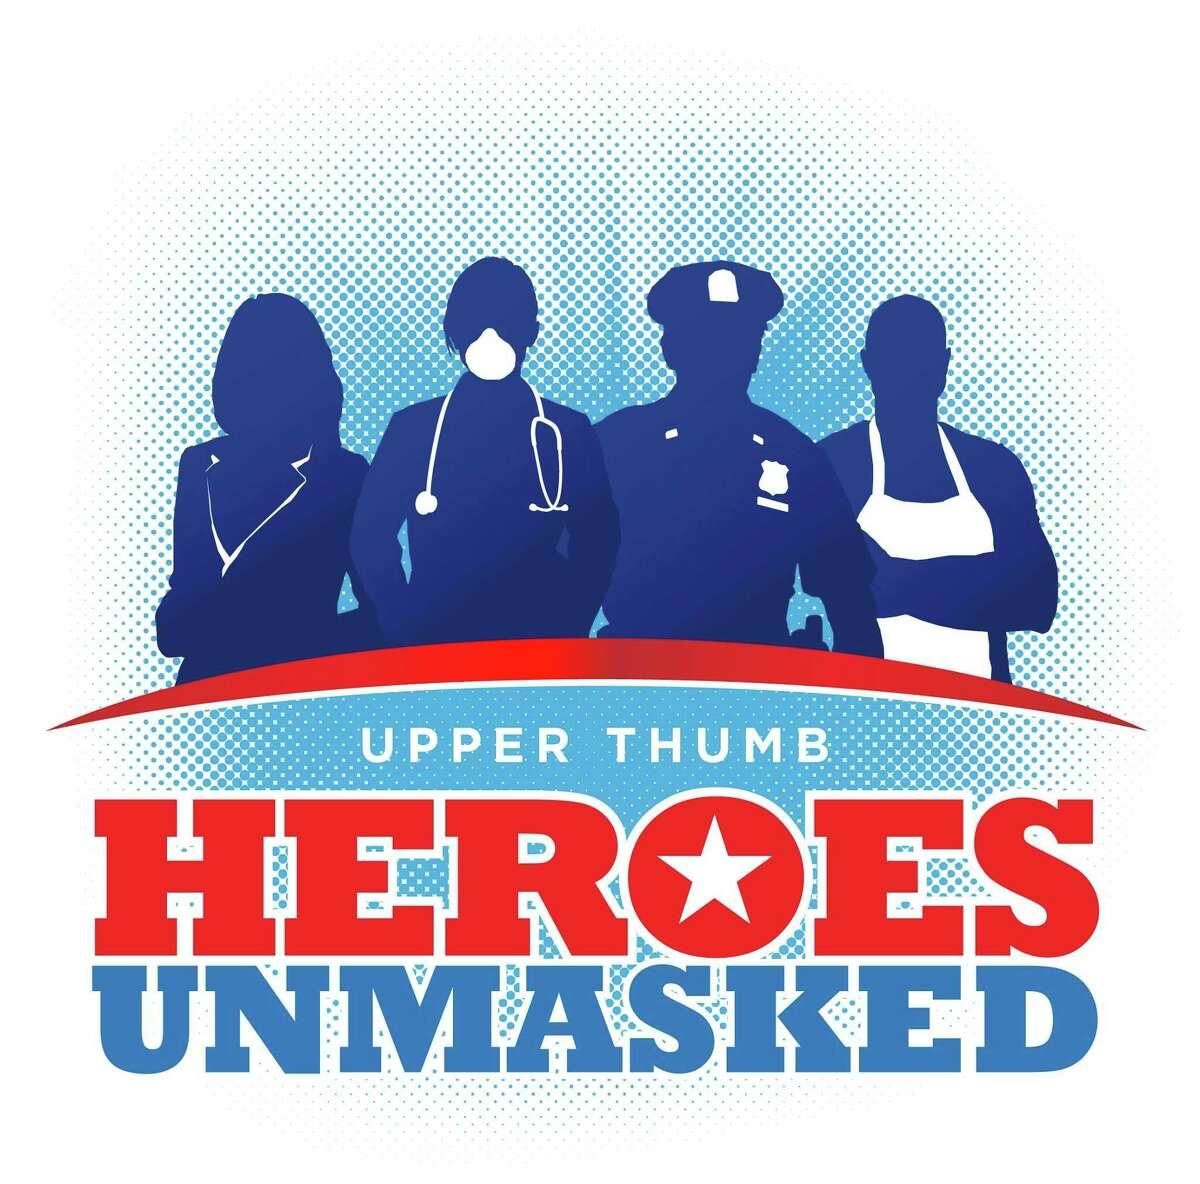 LOOKING FOR HEROES Do you know someone who's been a community hero during the coronavirus pandemic? The Tribune wants to shine a light on everyday people doing great things during this crisis.If you know someone, send a note to eric.young@hearstnp.com or scott.nunn@hearstnp.com to say who they are and what they have been doing.